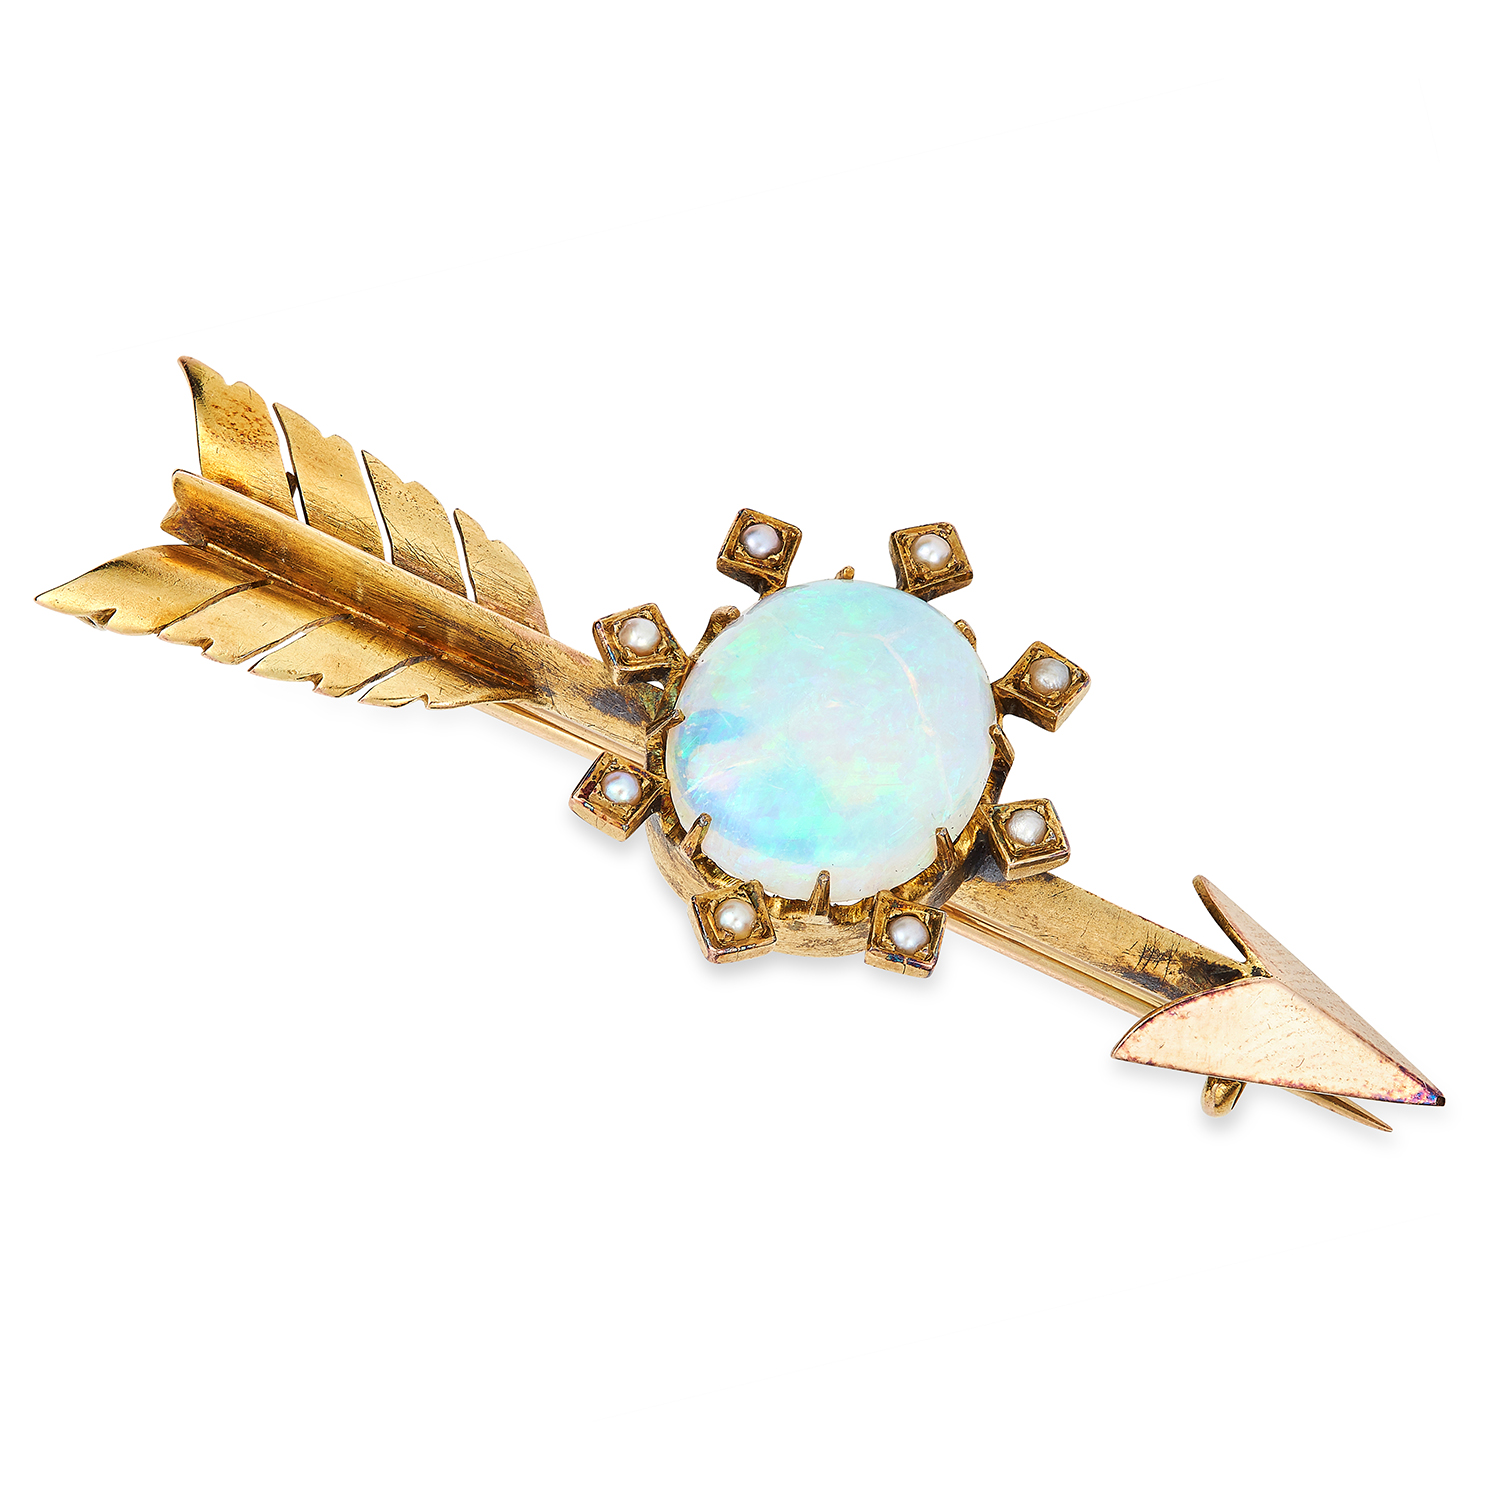 Los 10 - OPAL AND PEARL ARROW BROOCH set with a cabochon opal and seed pearls, 6.2cm, 9.7g.